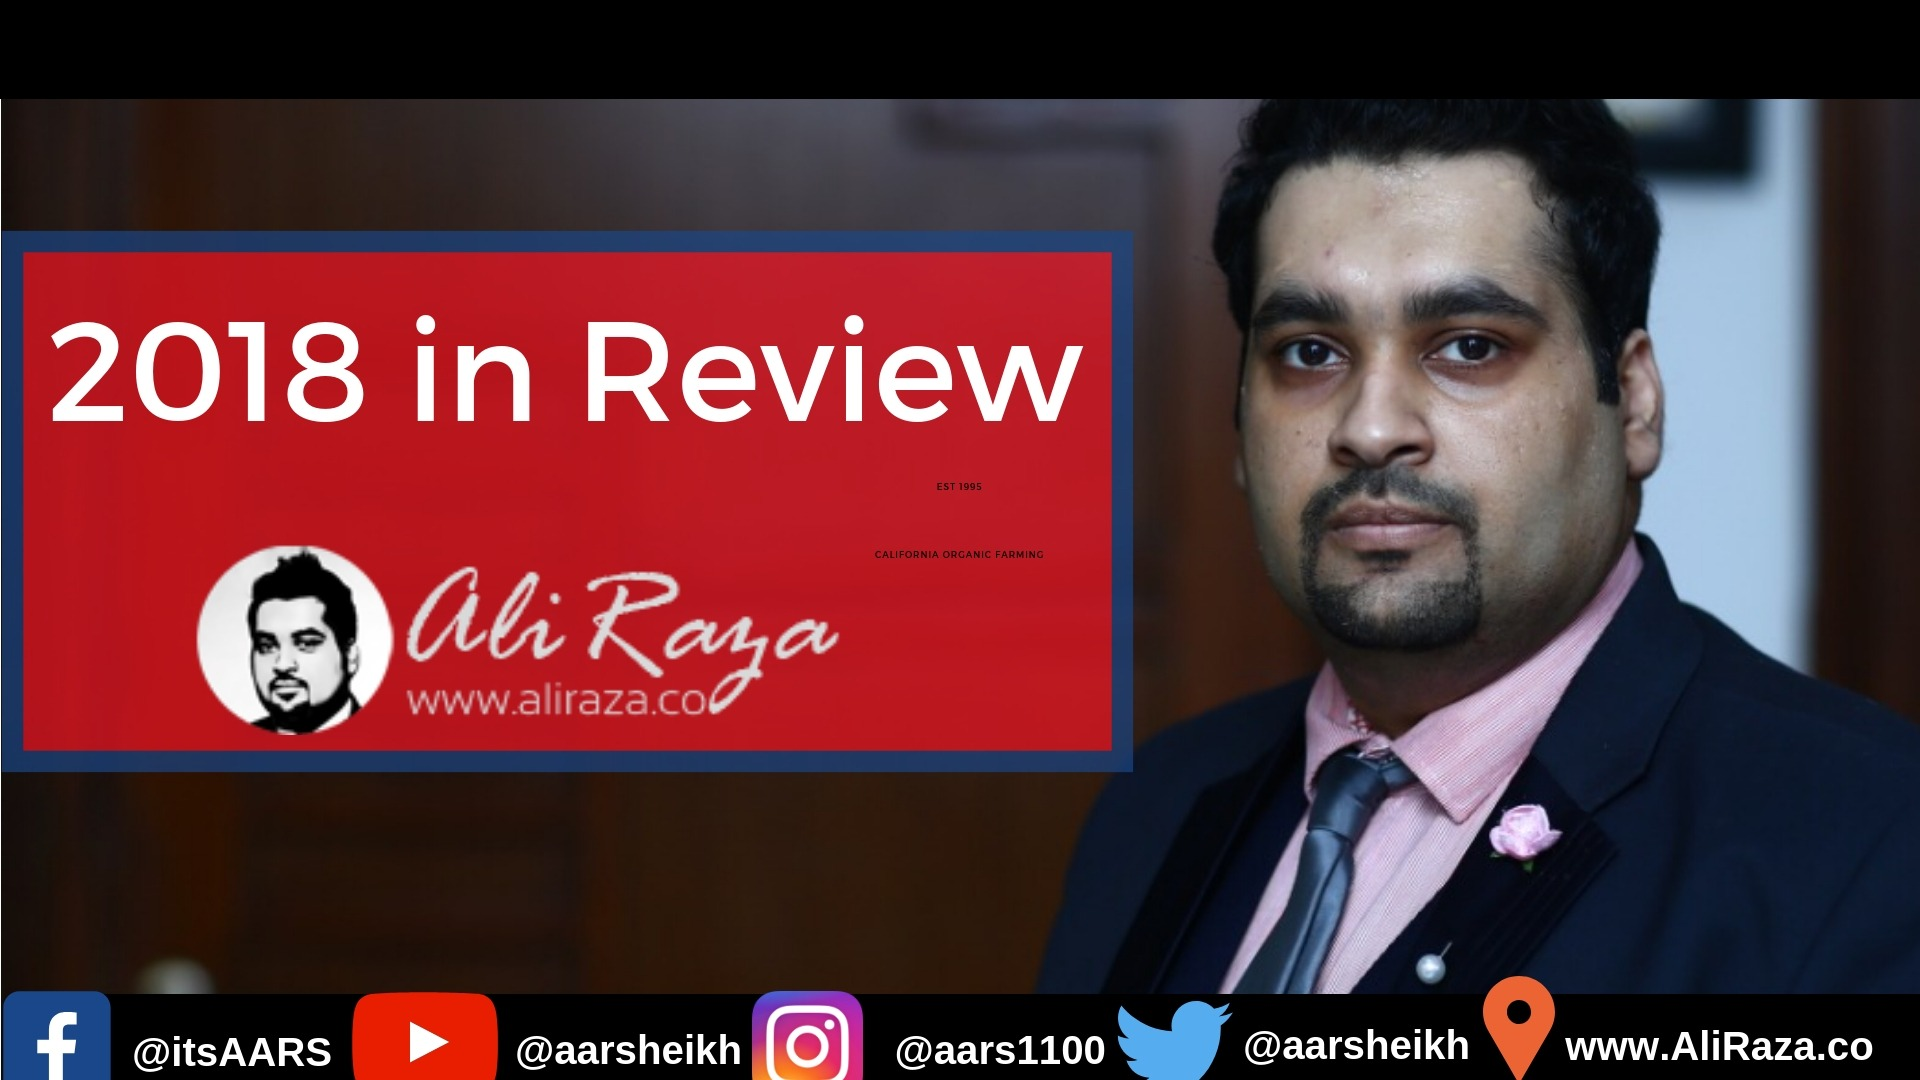 2018 Review aliraza.co